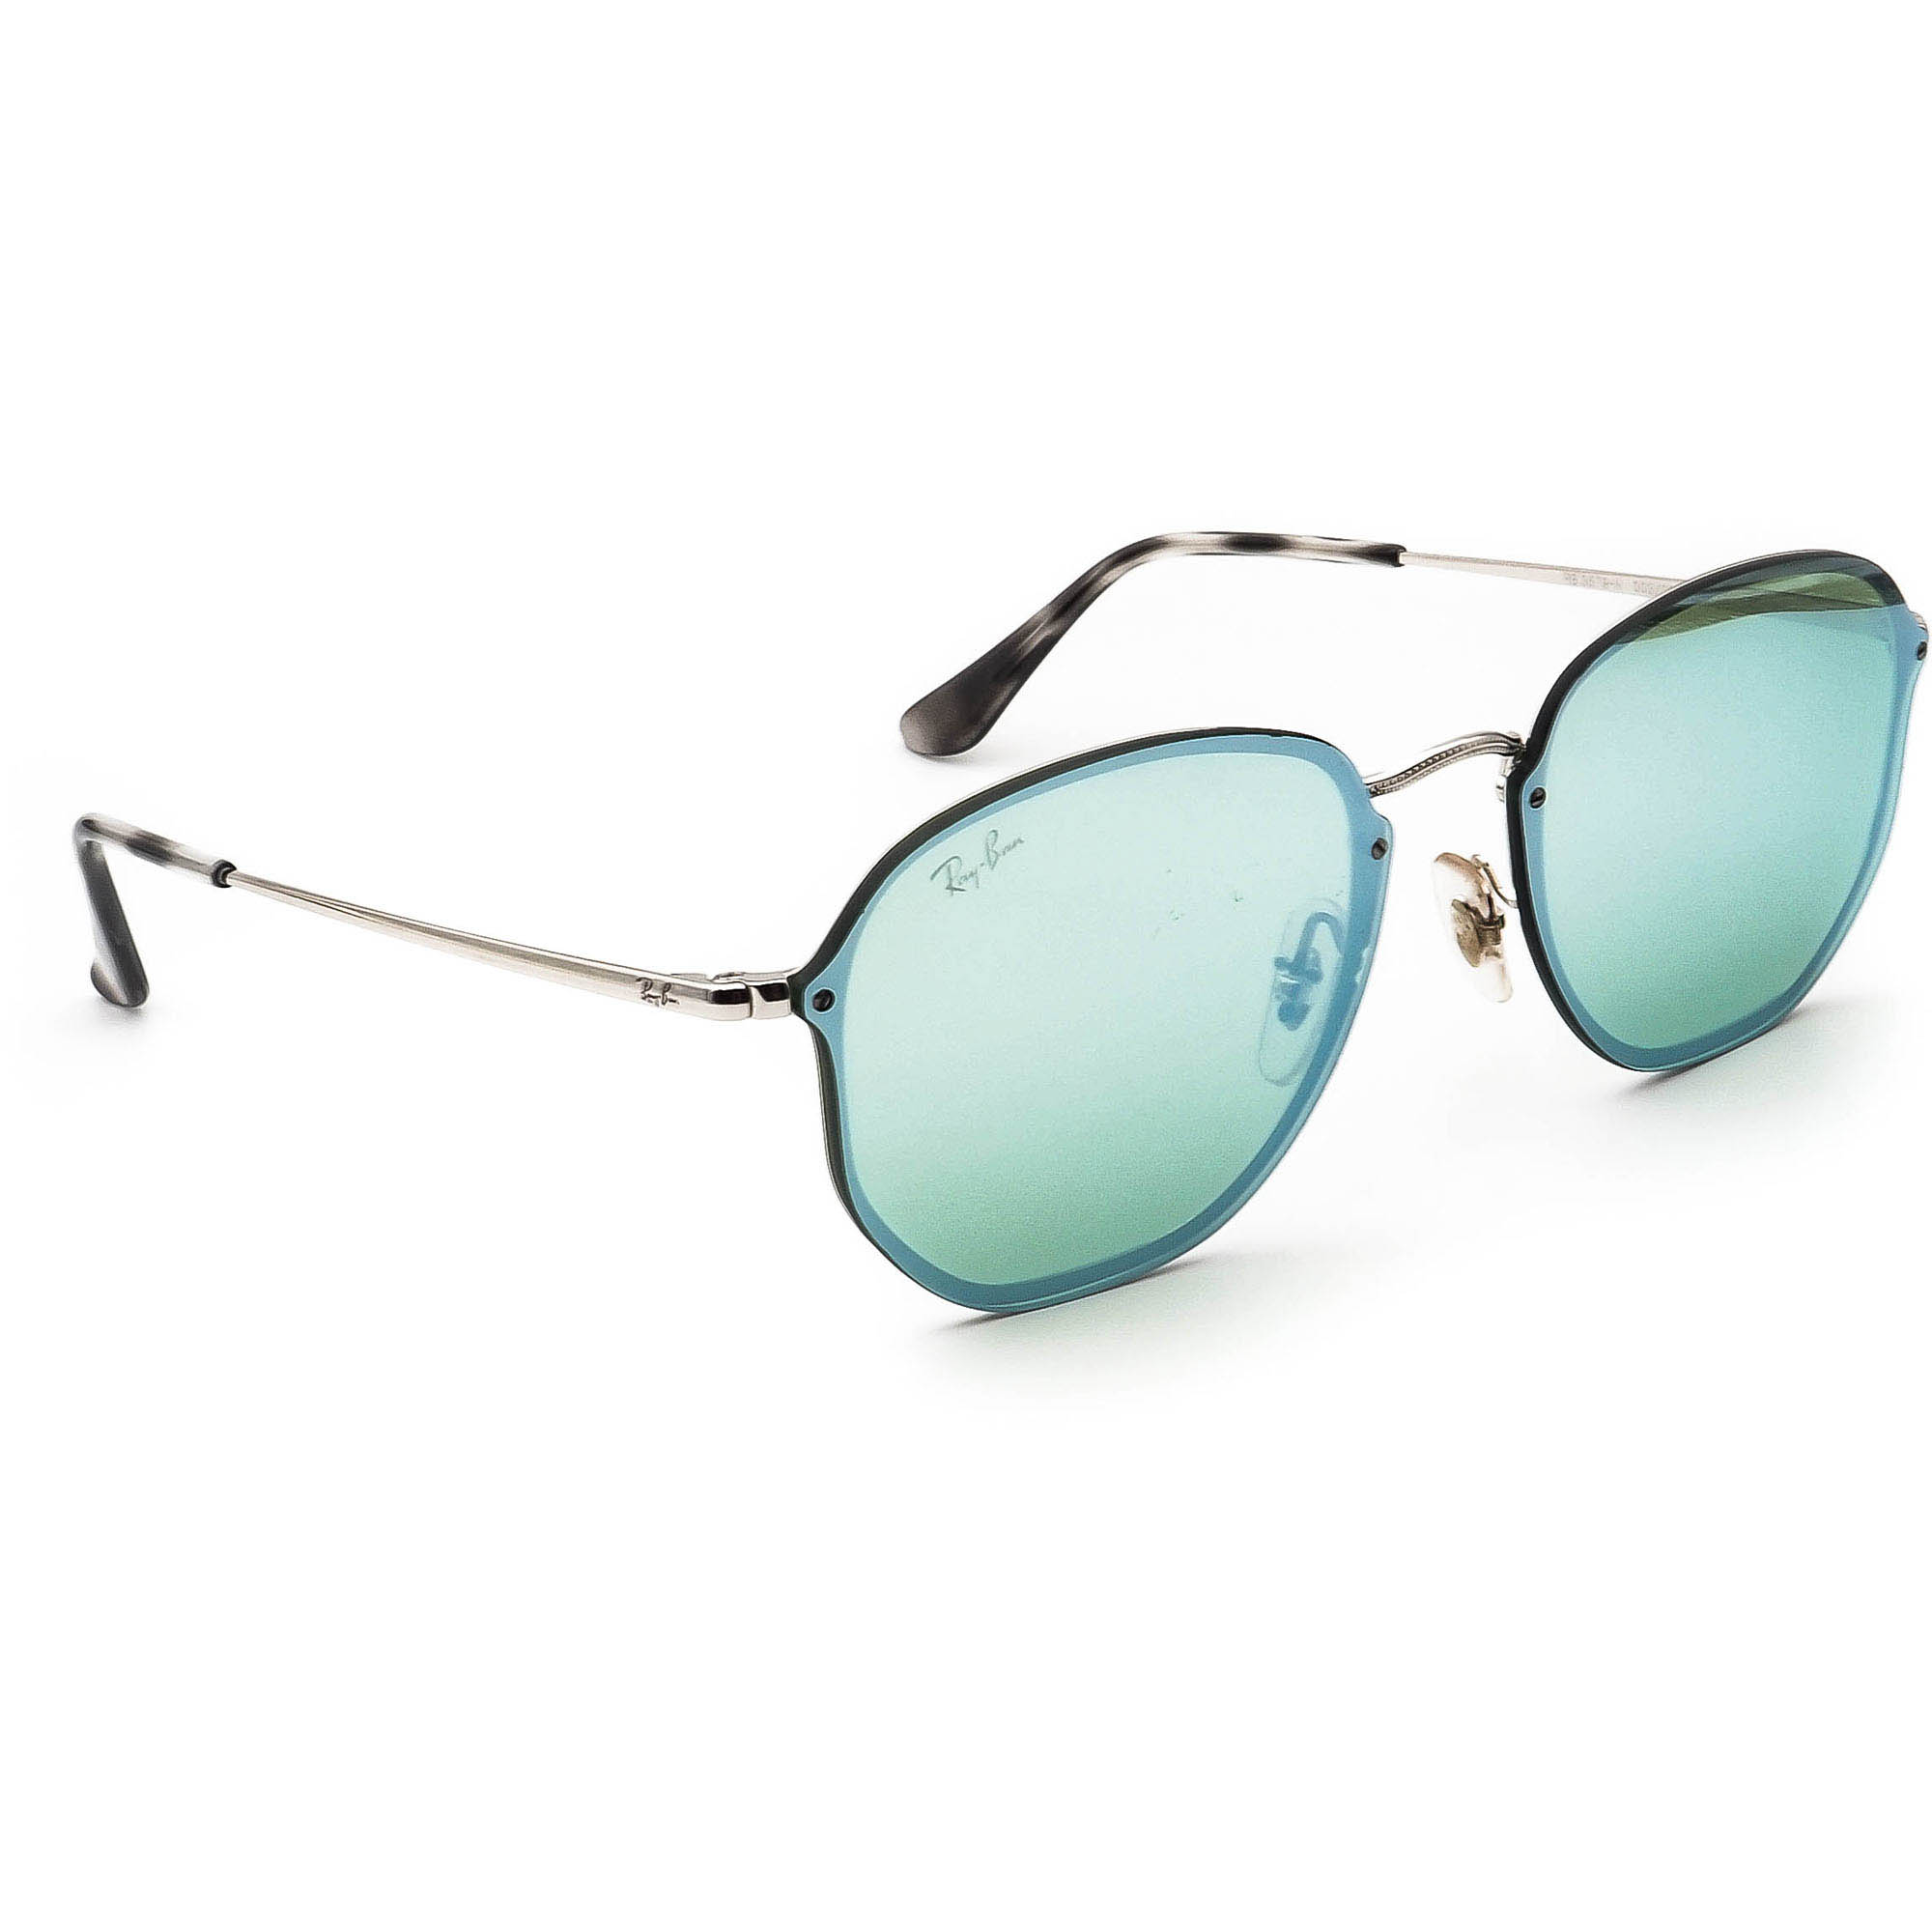 Ray-Ban Unisex RB 3579-N 003/30 Sunglasses